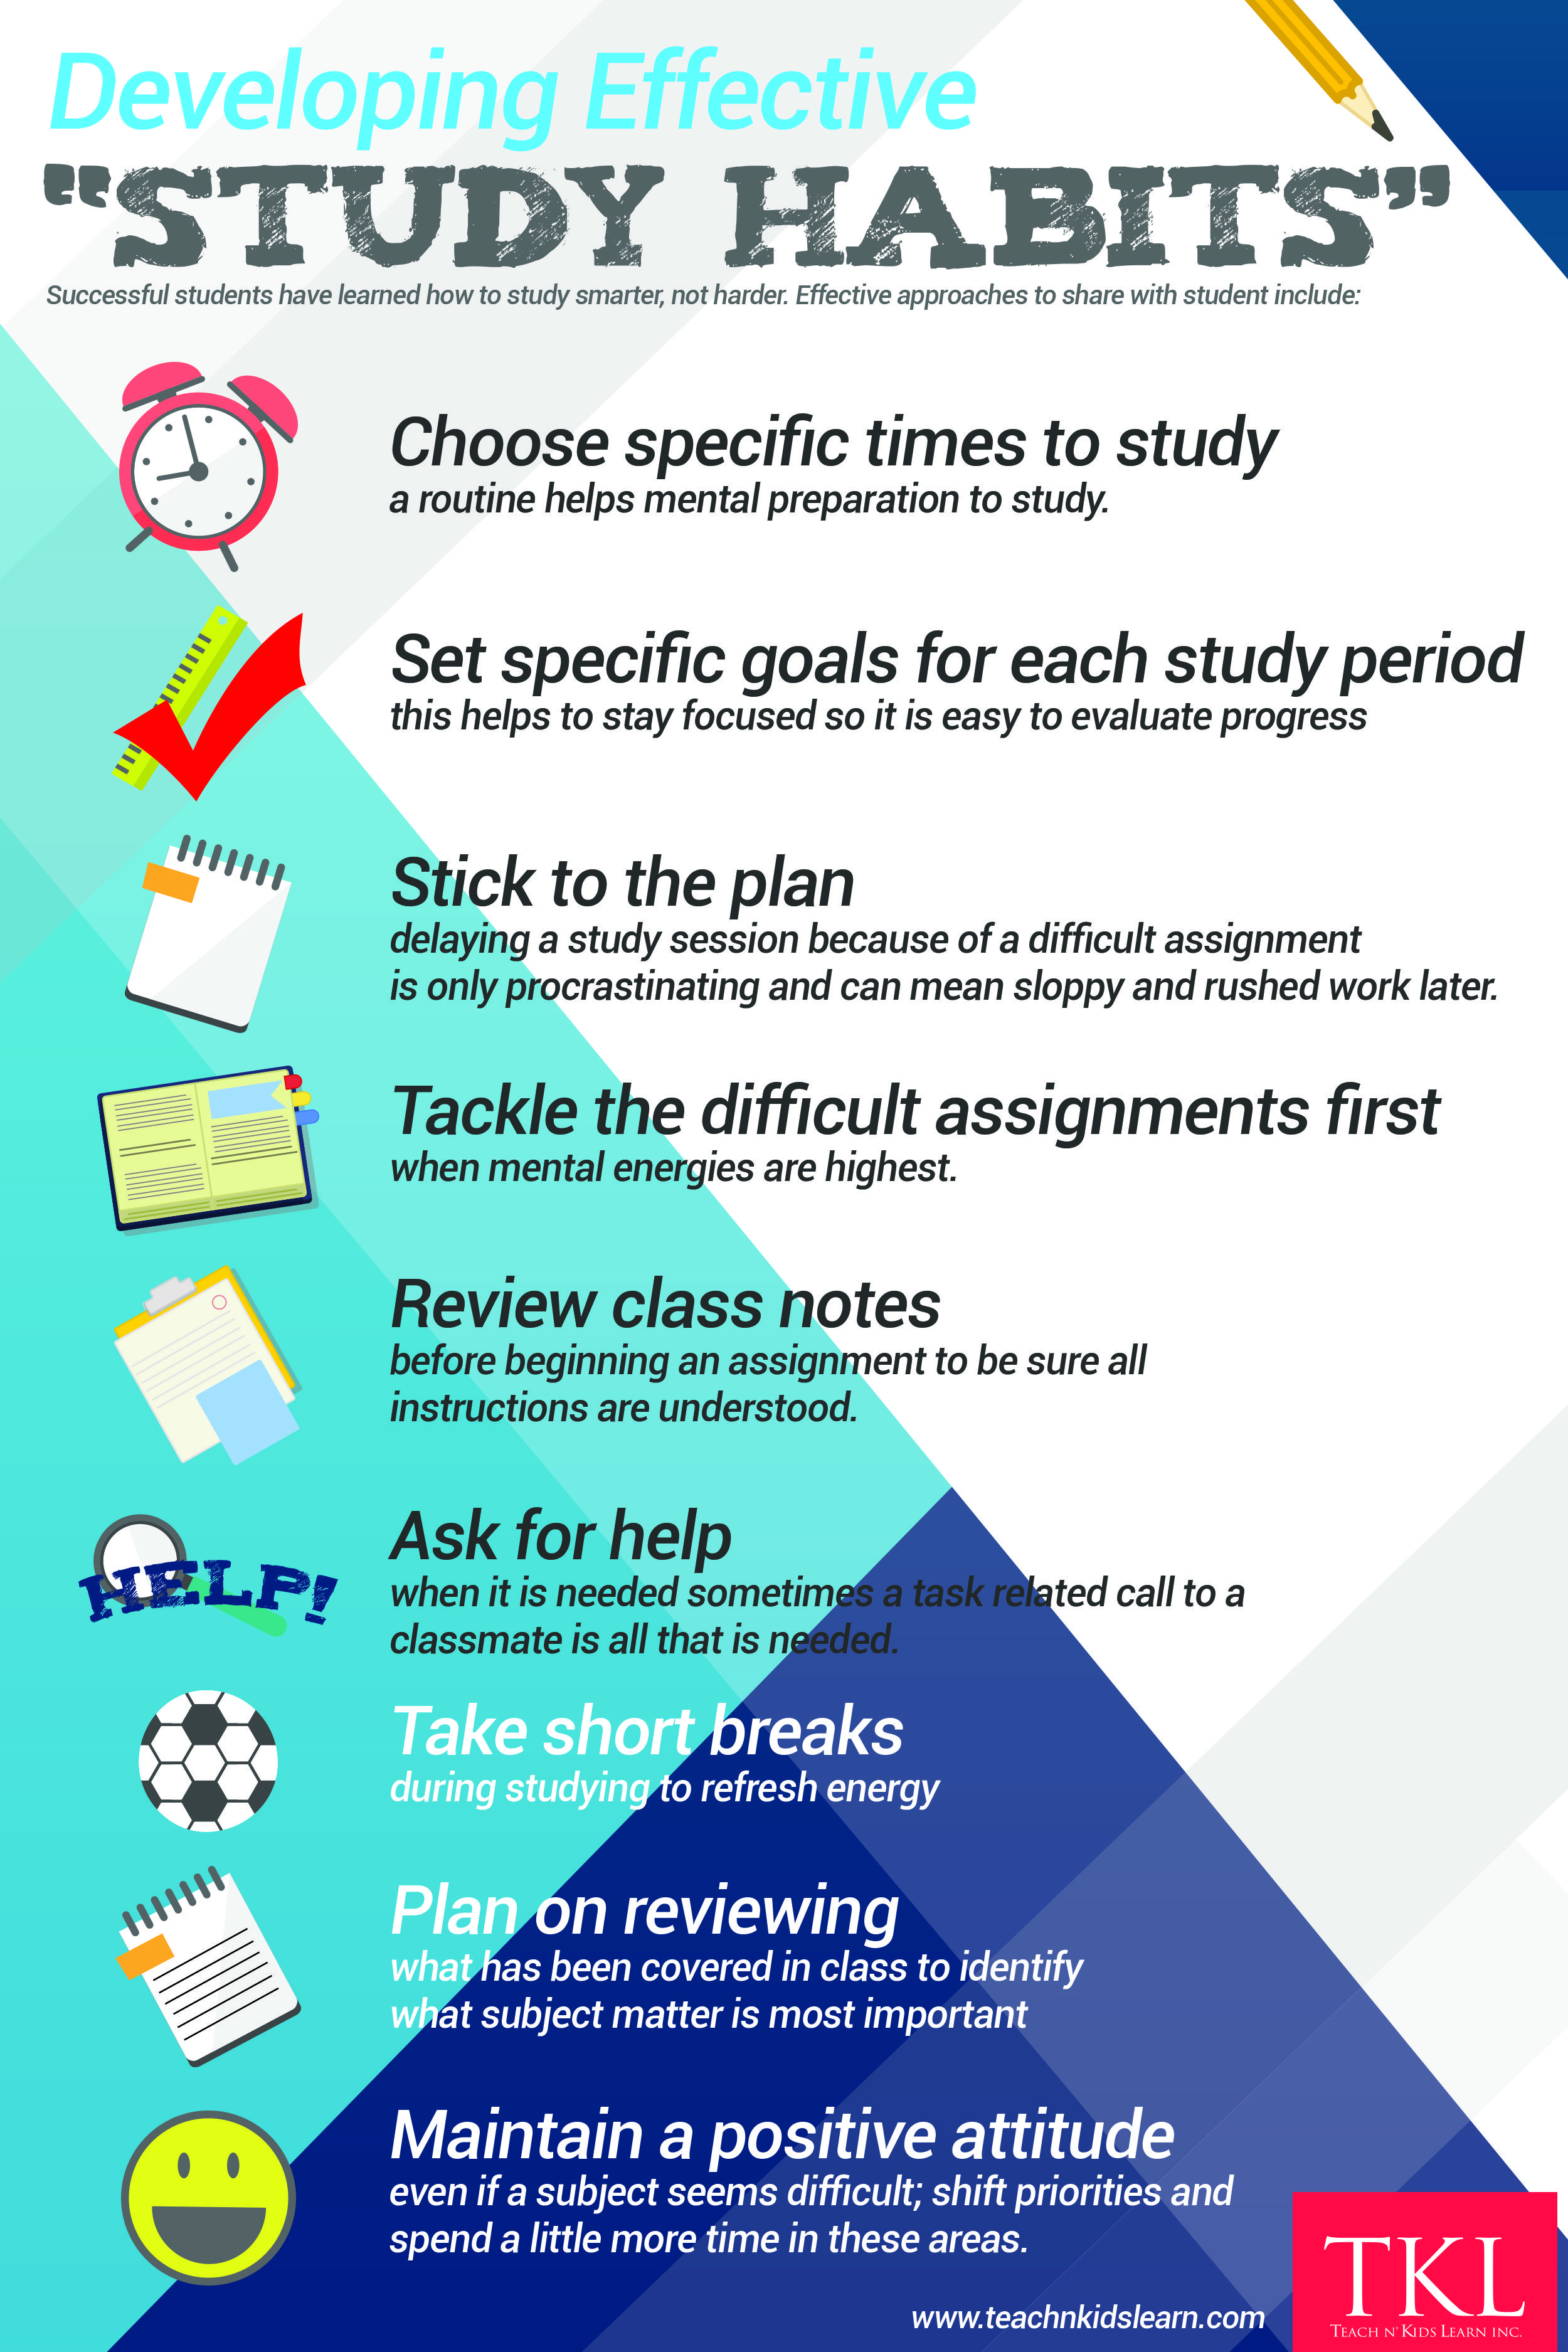 Developing Effective Student Study Habits With Images